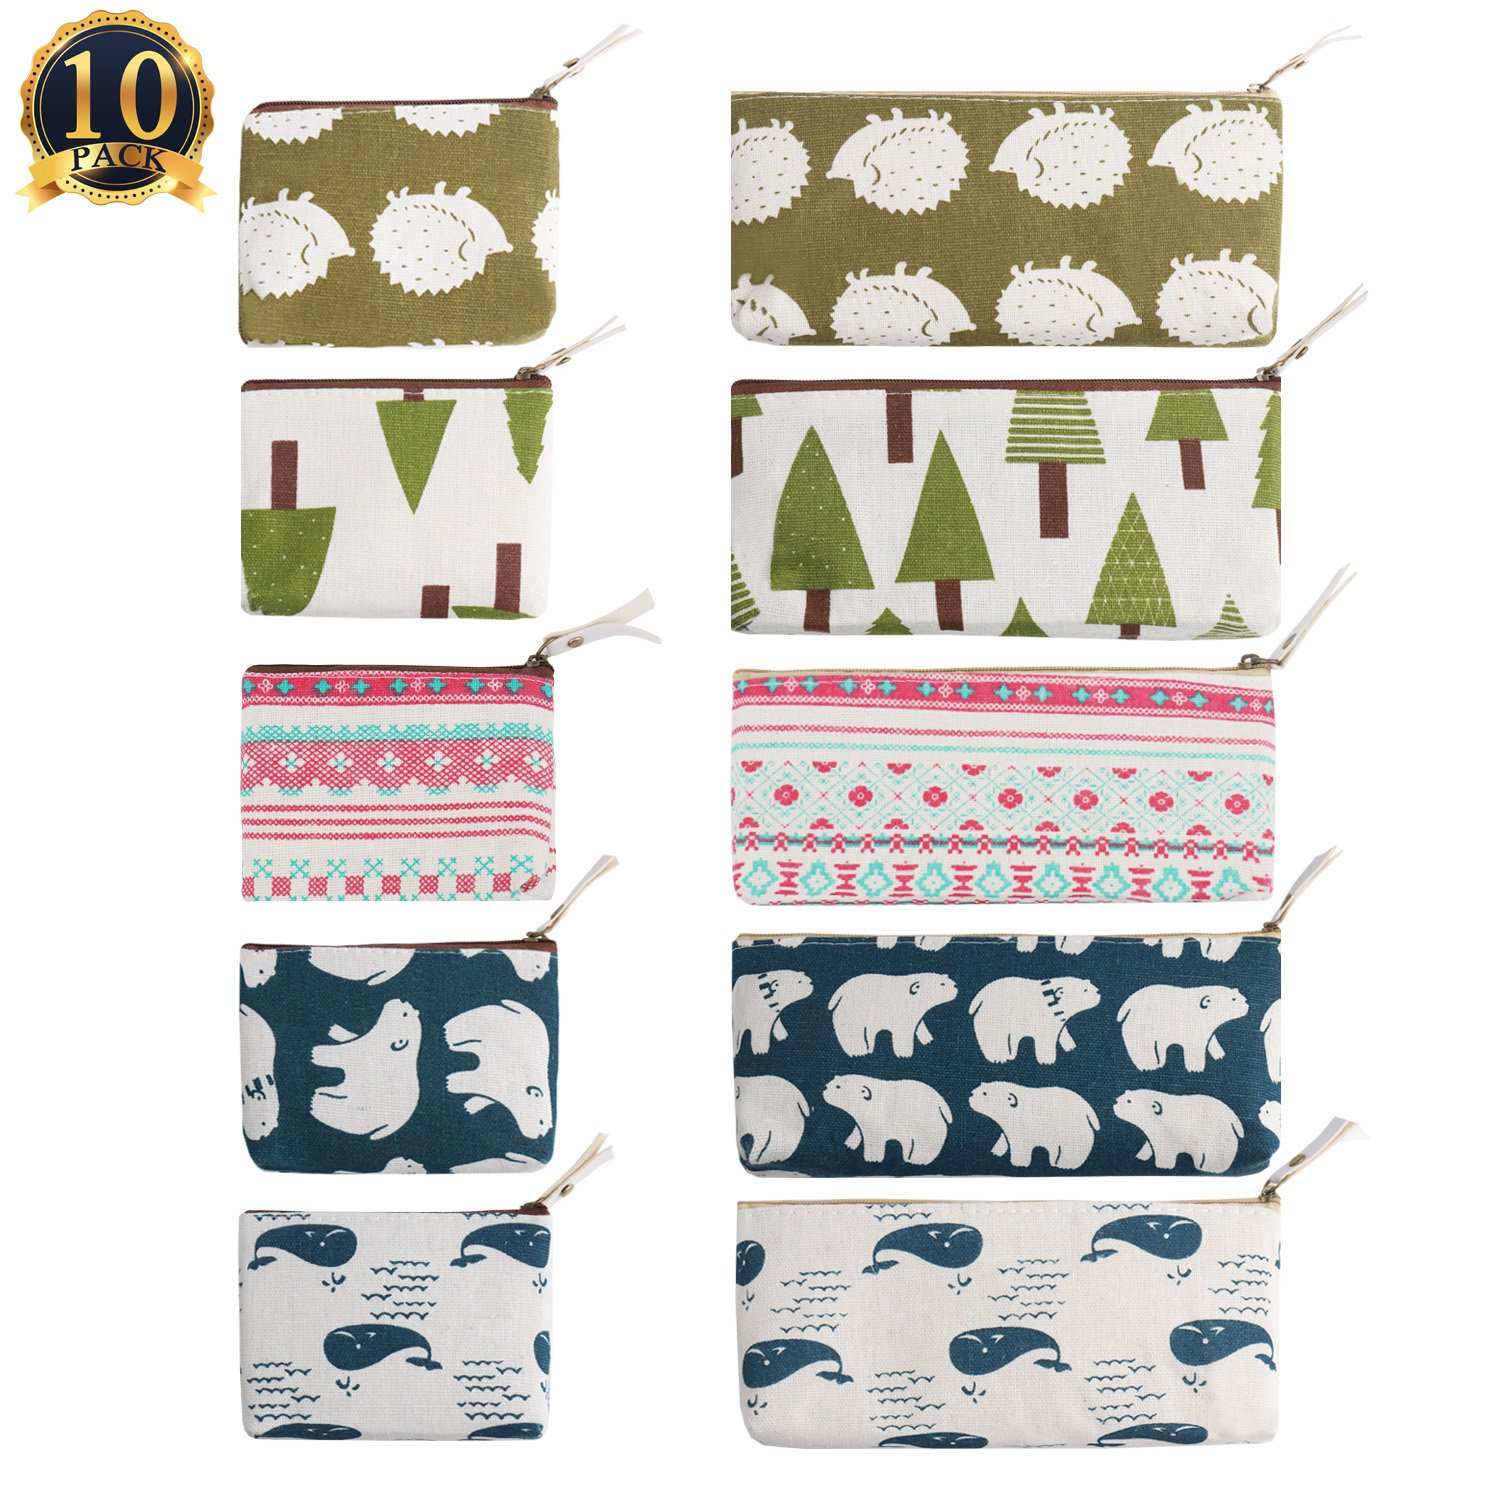 SUBANG 10 Packs Pencil Case Forest And Animal Theme Linen New Style Pencil Case Box Makeup Bag, 5 Styles by SUBANG